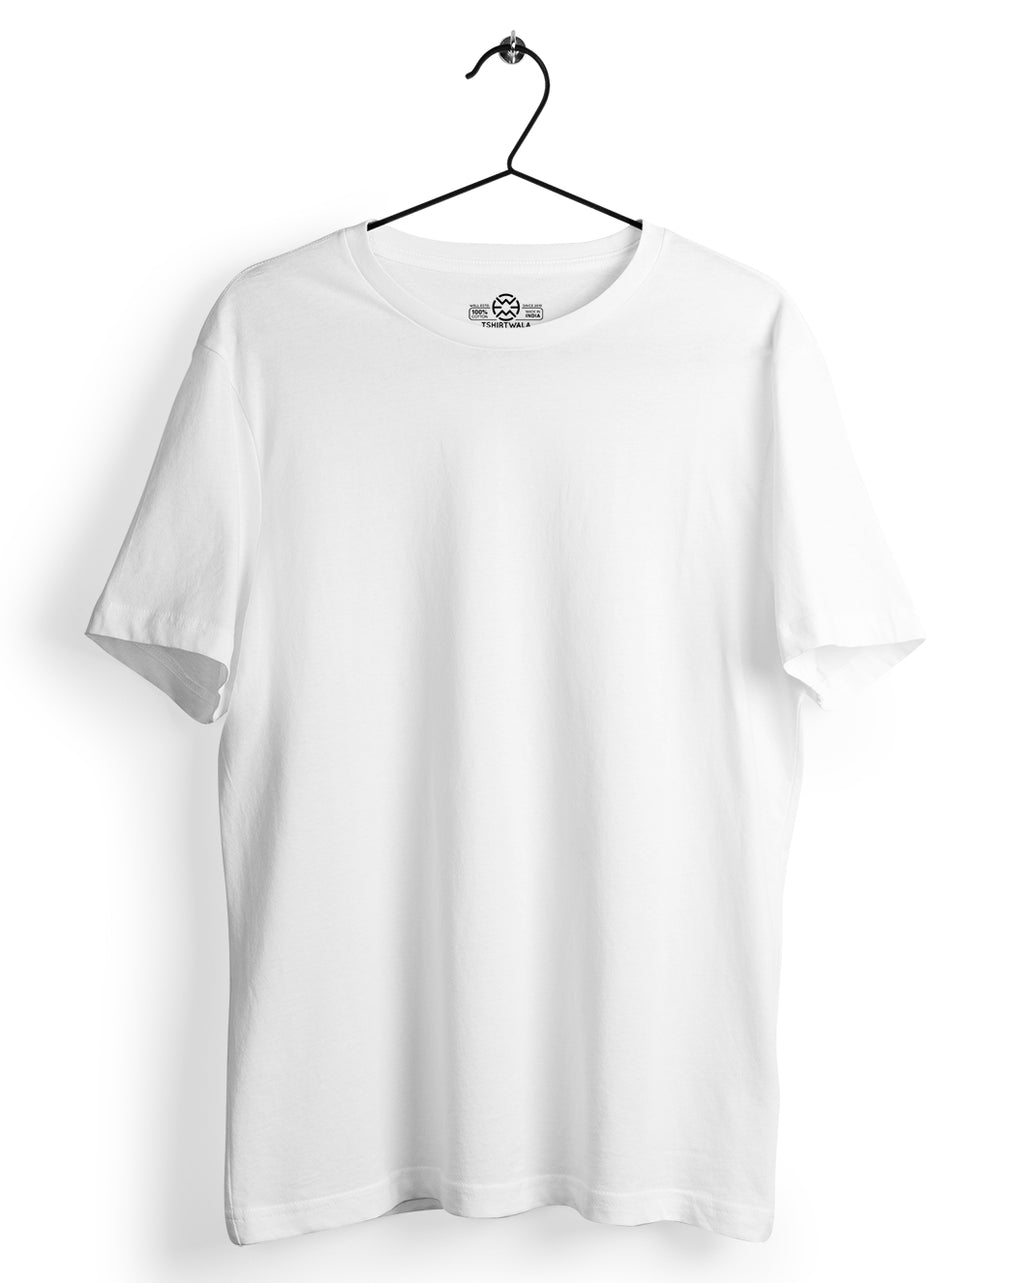 Basic White Round neck T-shirt